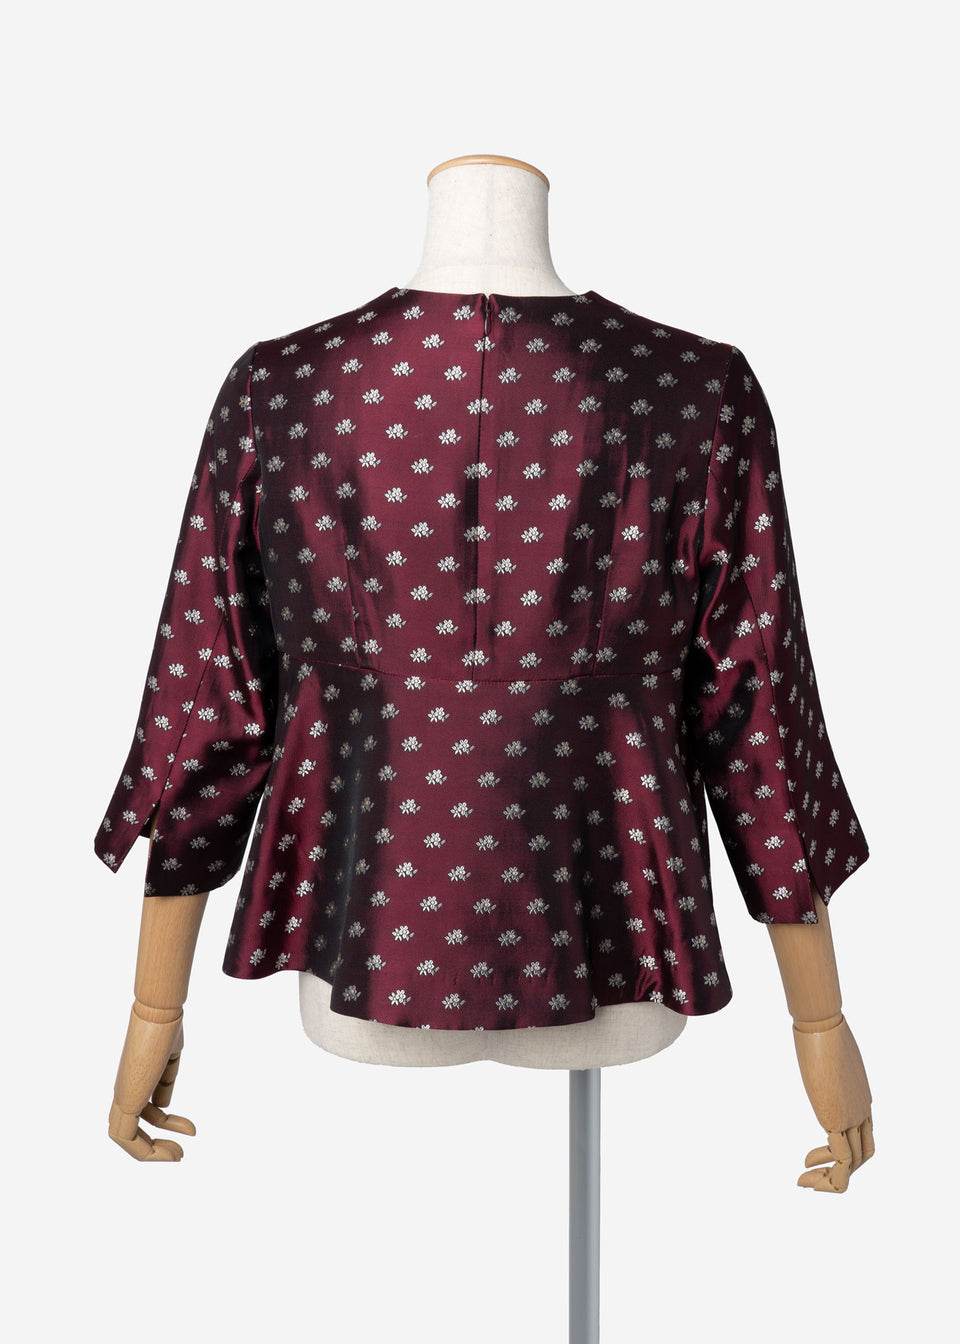 Dutel Floret Blouse in Bordeaux